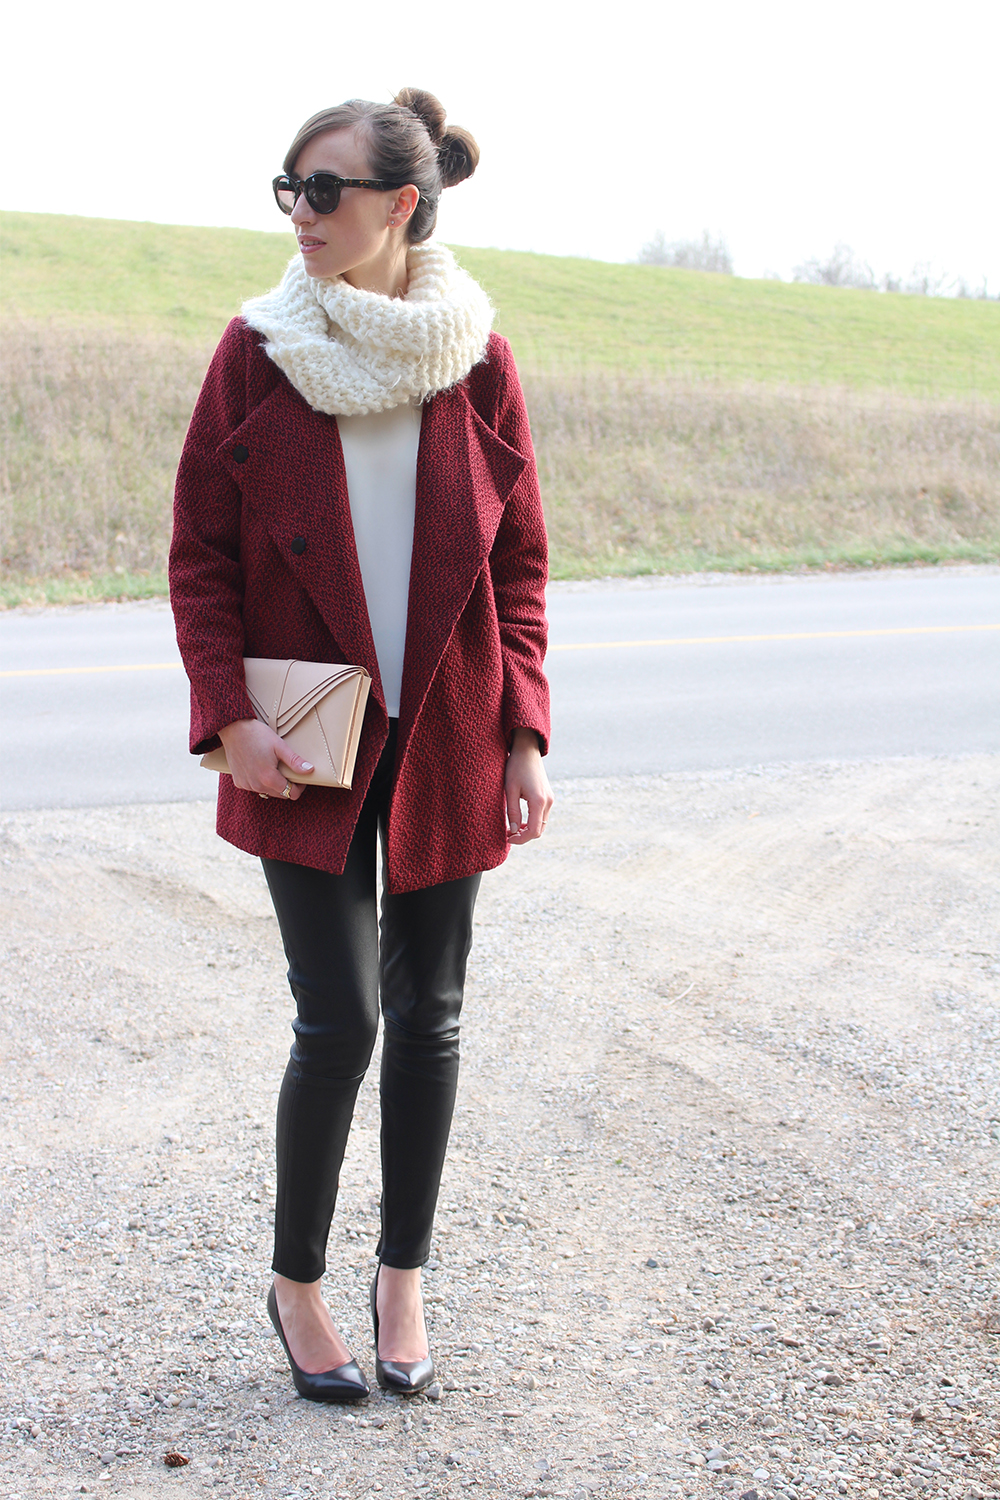 Style Bee in leather pants and red coat.